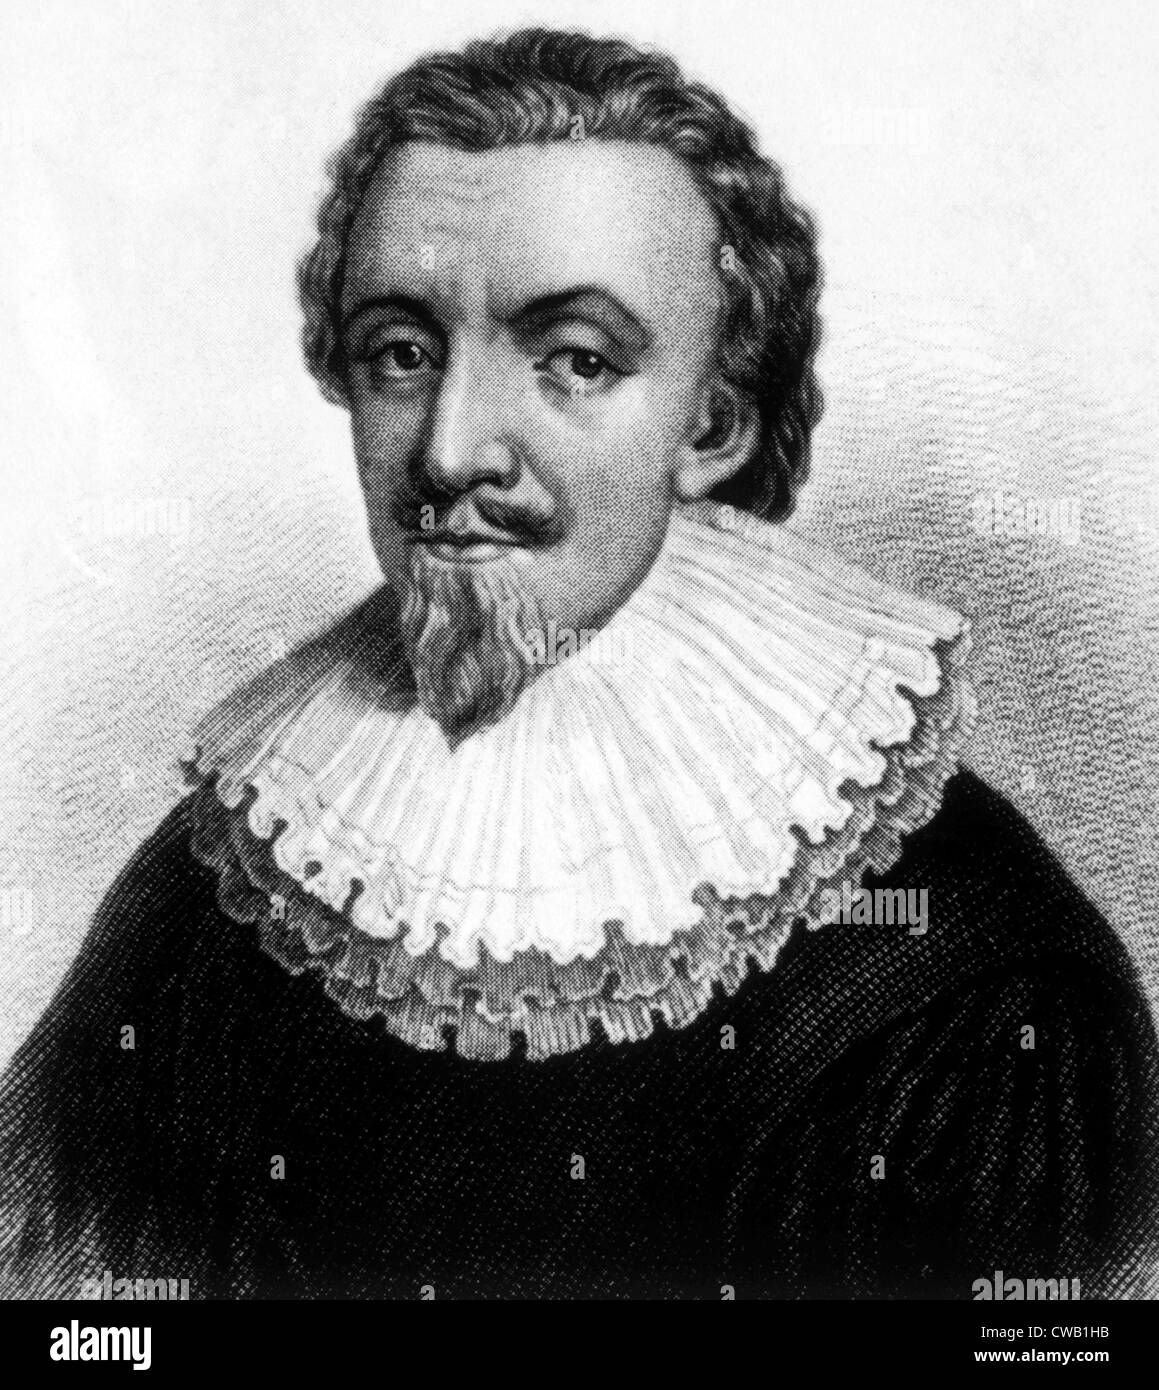 George Calvert (c.1580-1632), the first Lord Baltimore - Stock Image